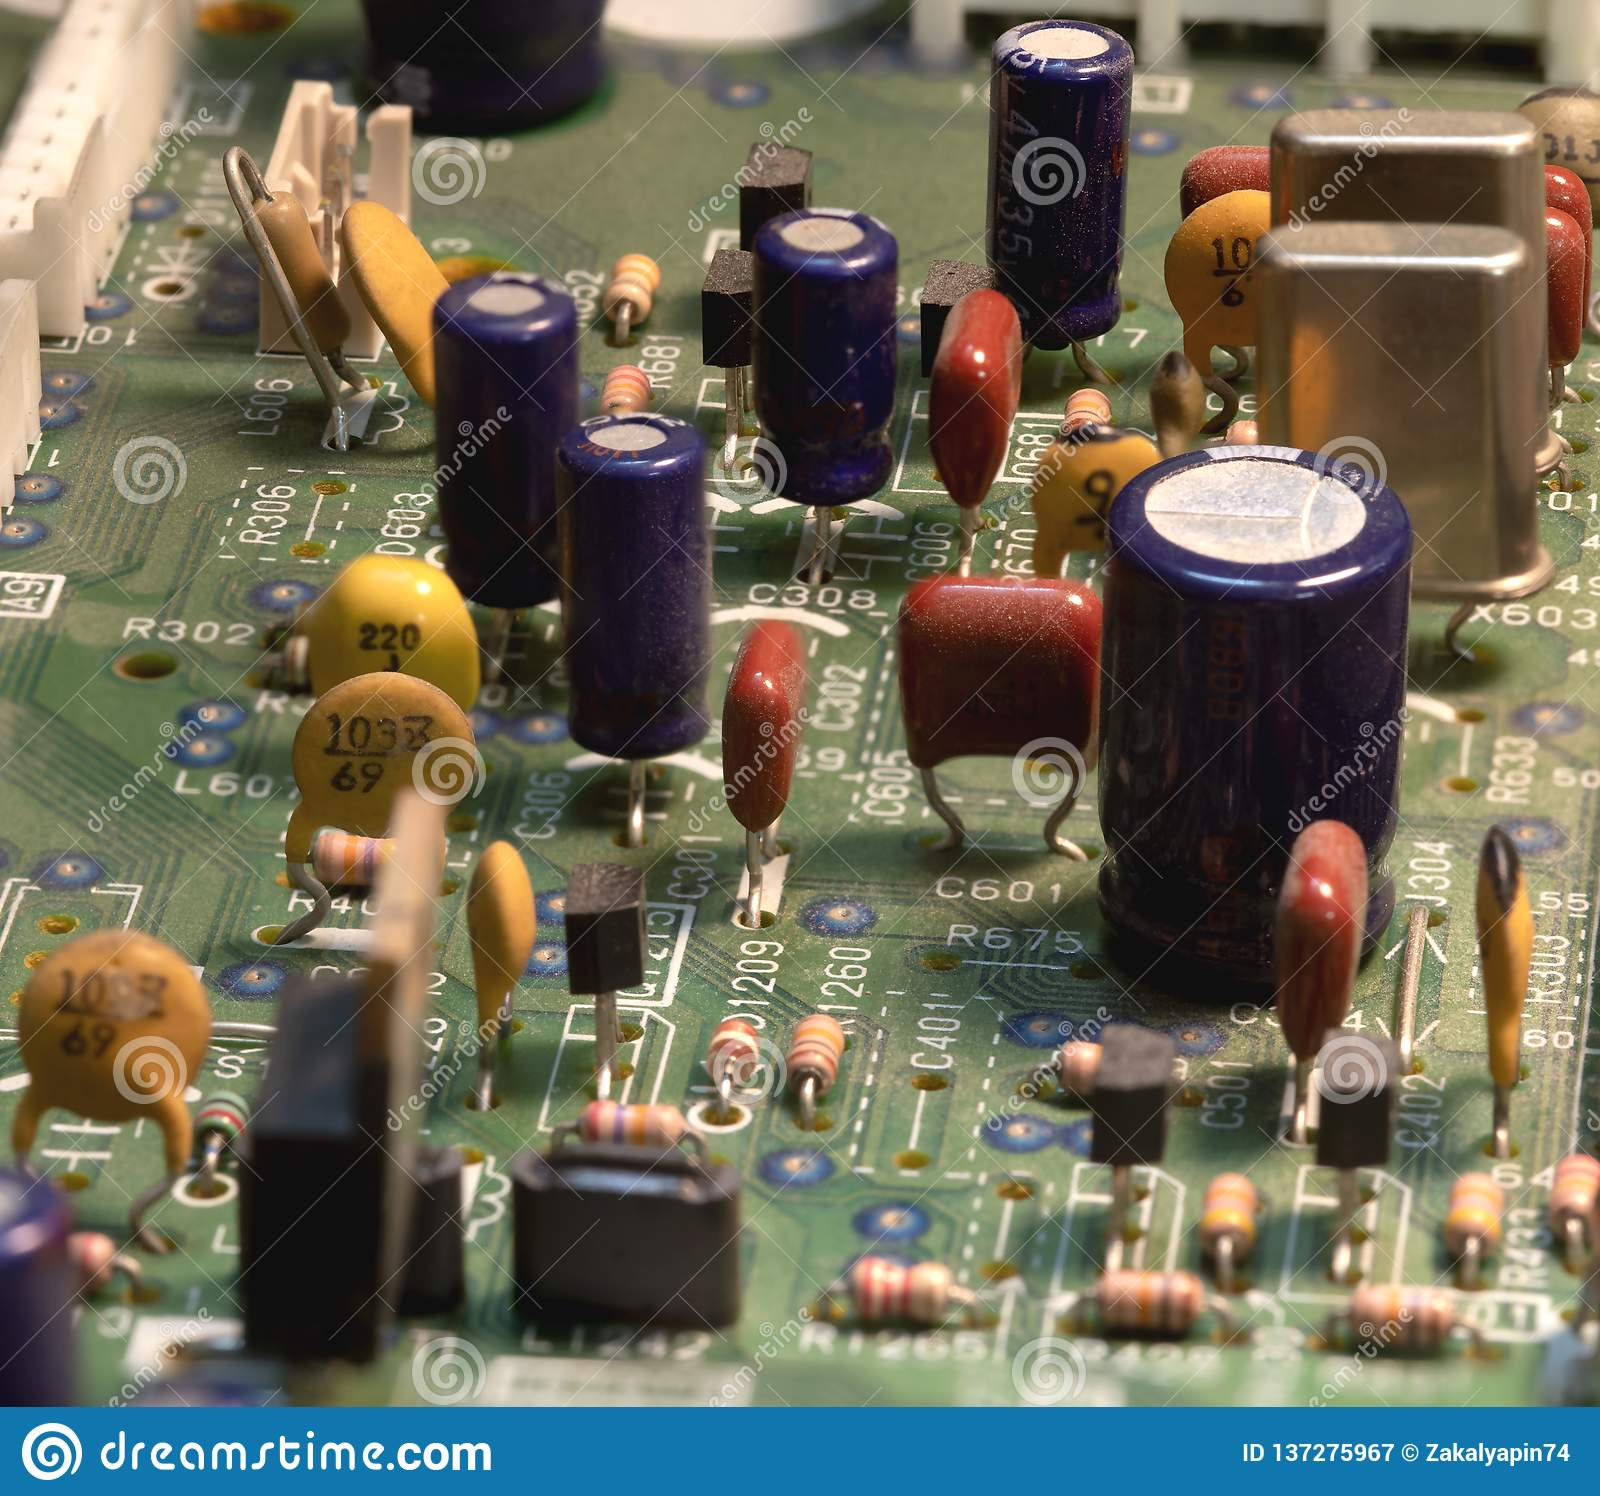 Radio components on a printed circuit board.